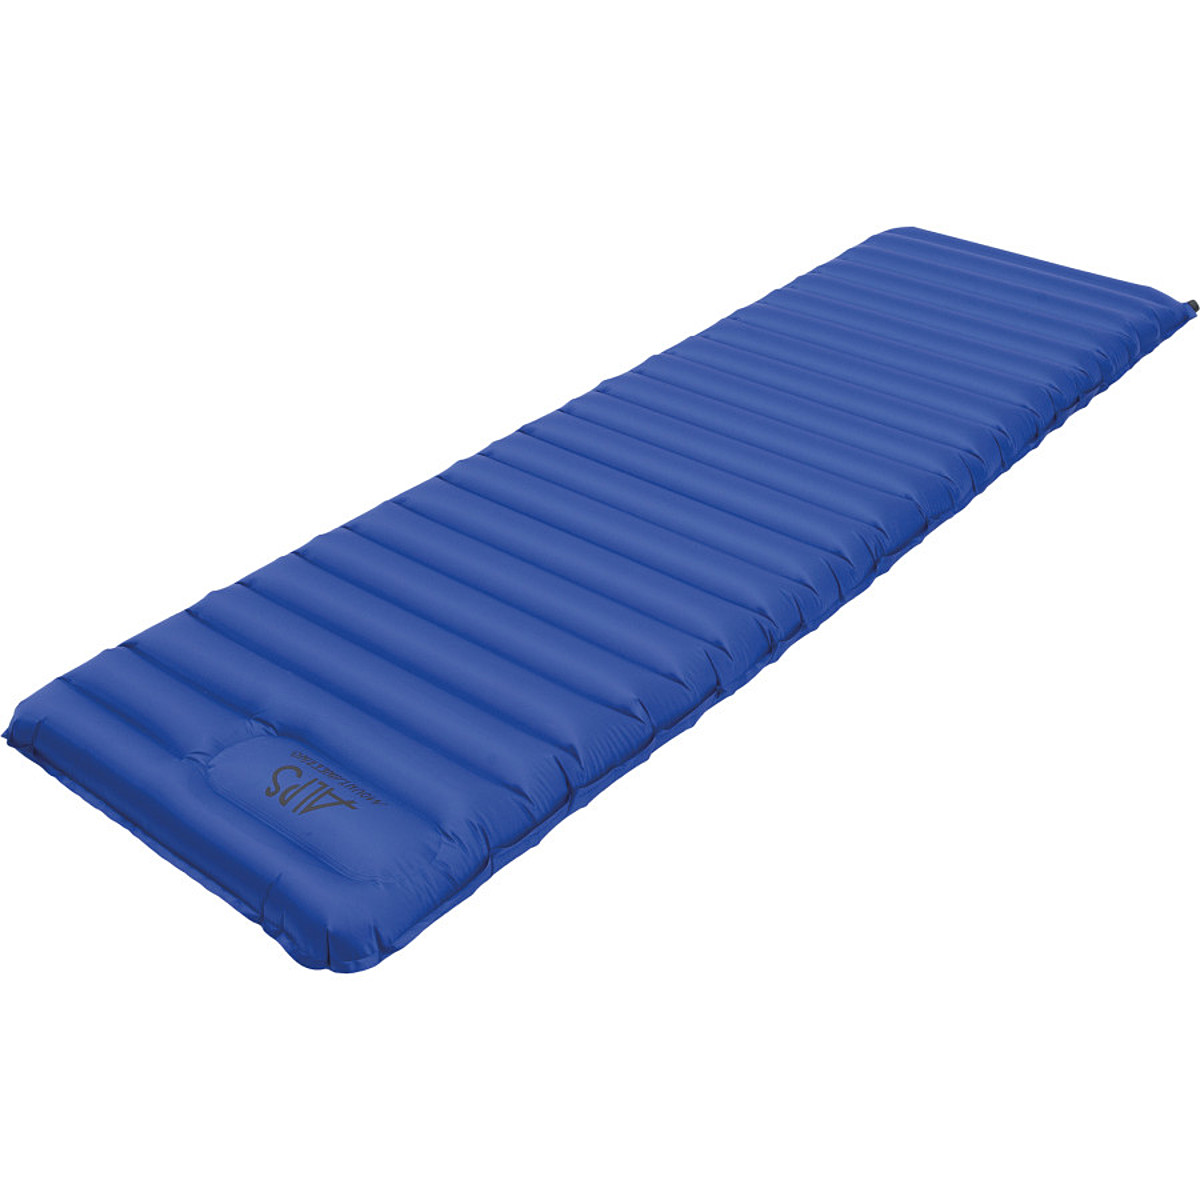 ALPS Mountaineering Elevation Sleeping Pad